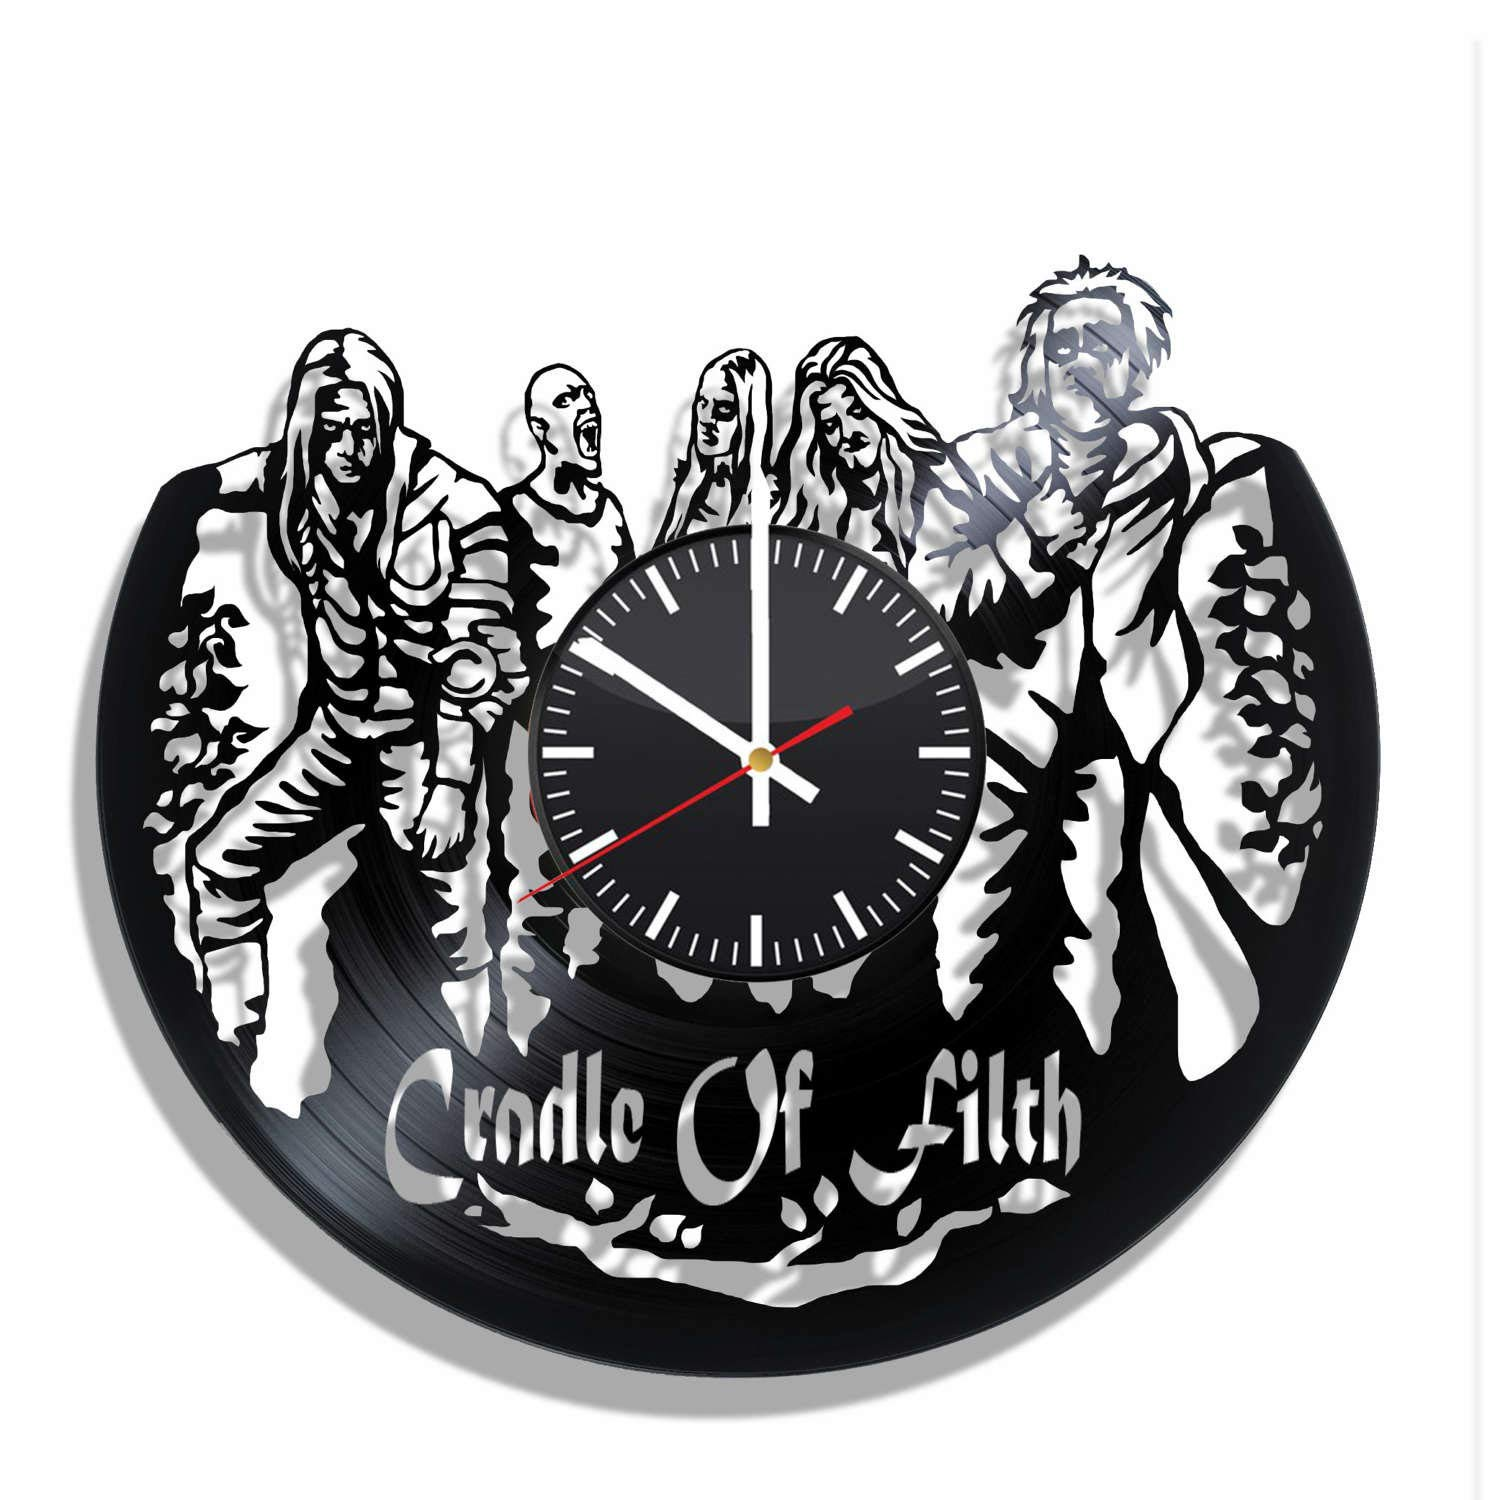 Cradle of Filth vinyl record wall clock, Cradle of Filth kitchen decor